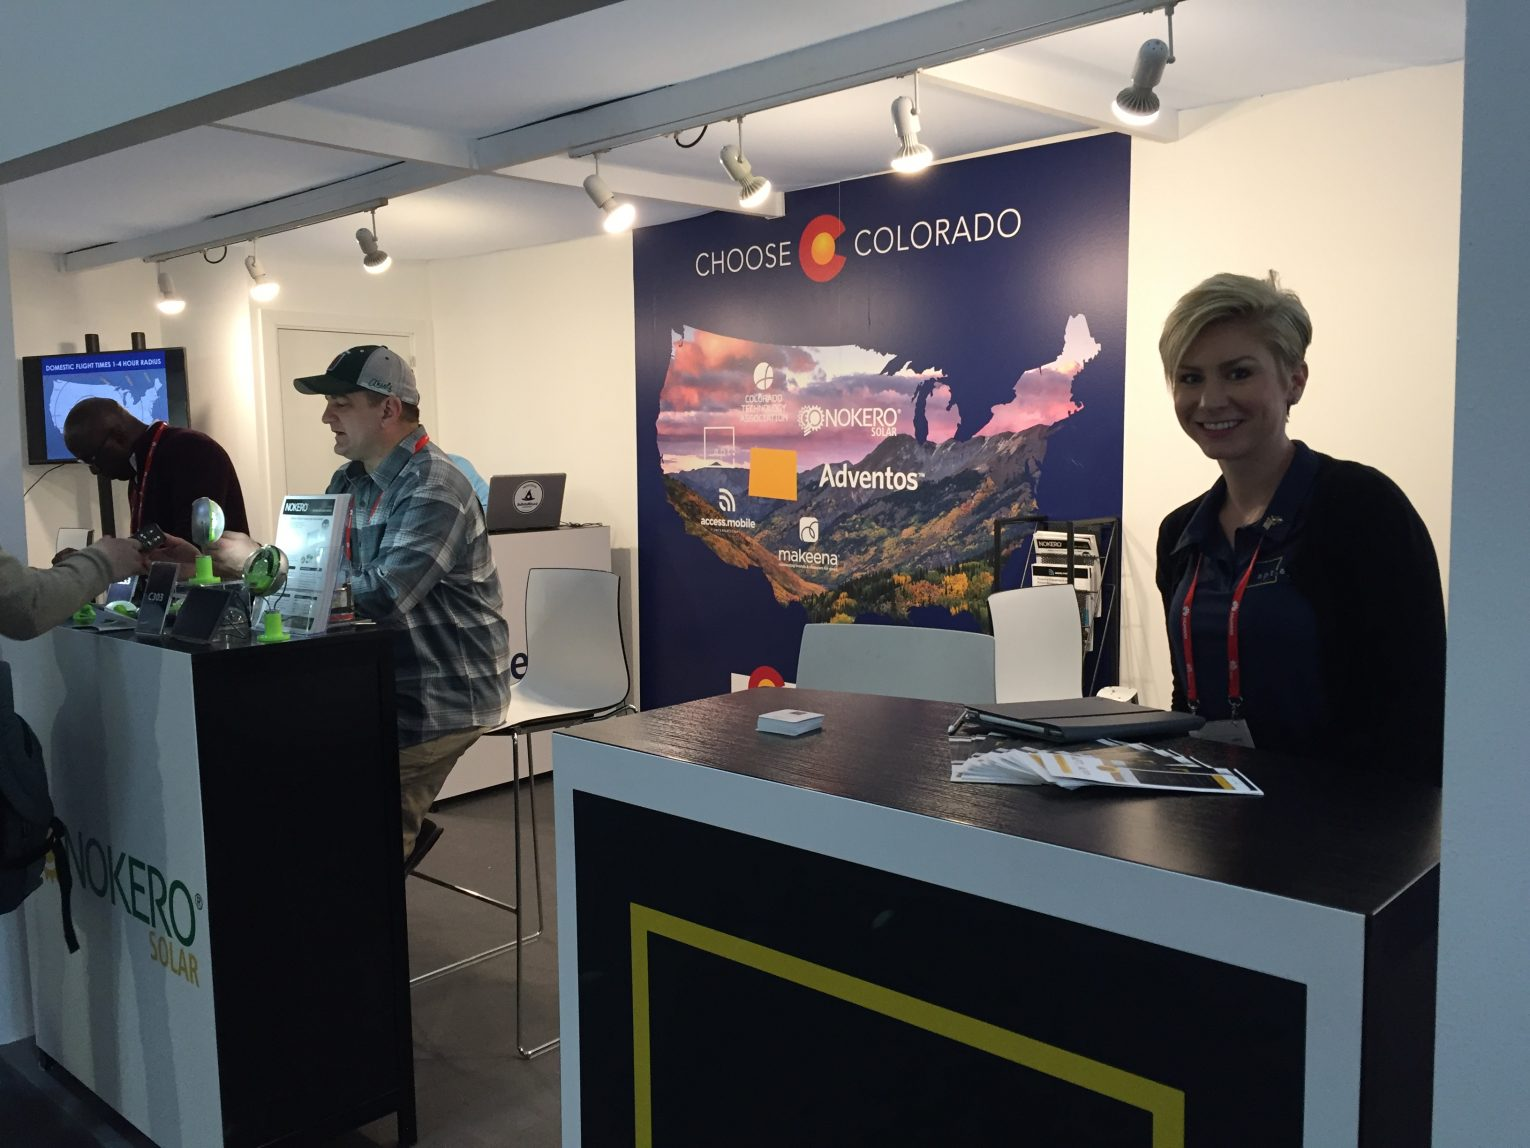 Colorado exhibits at Mobile World Congress